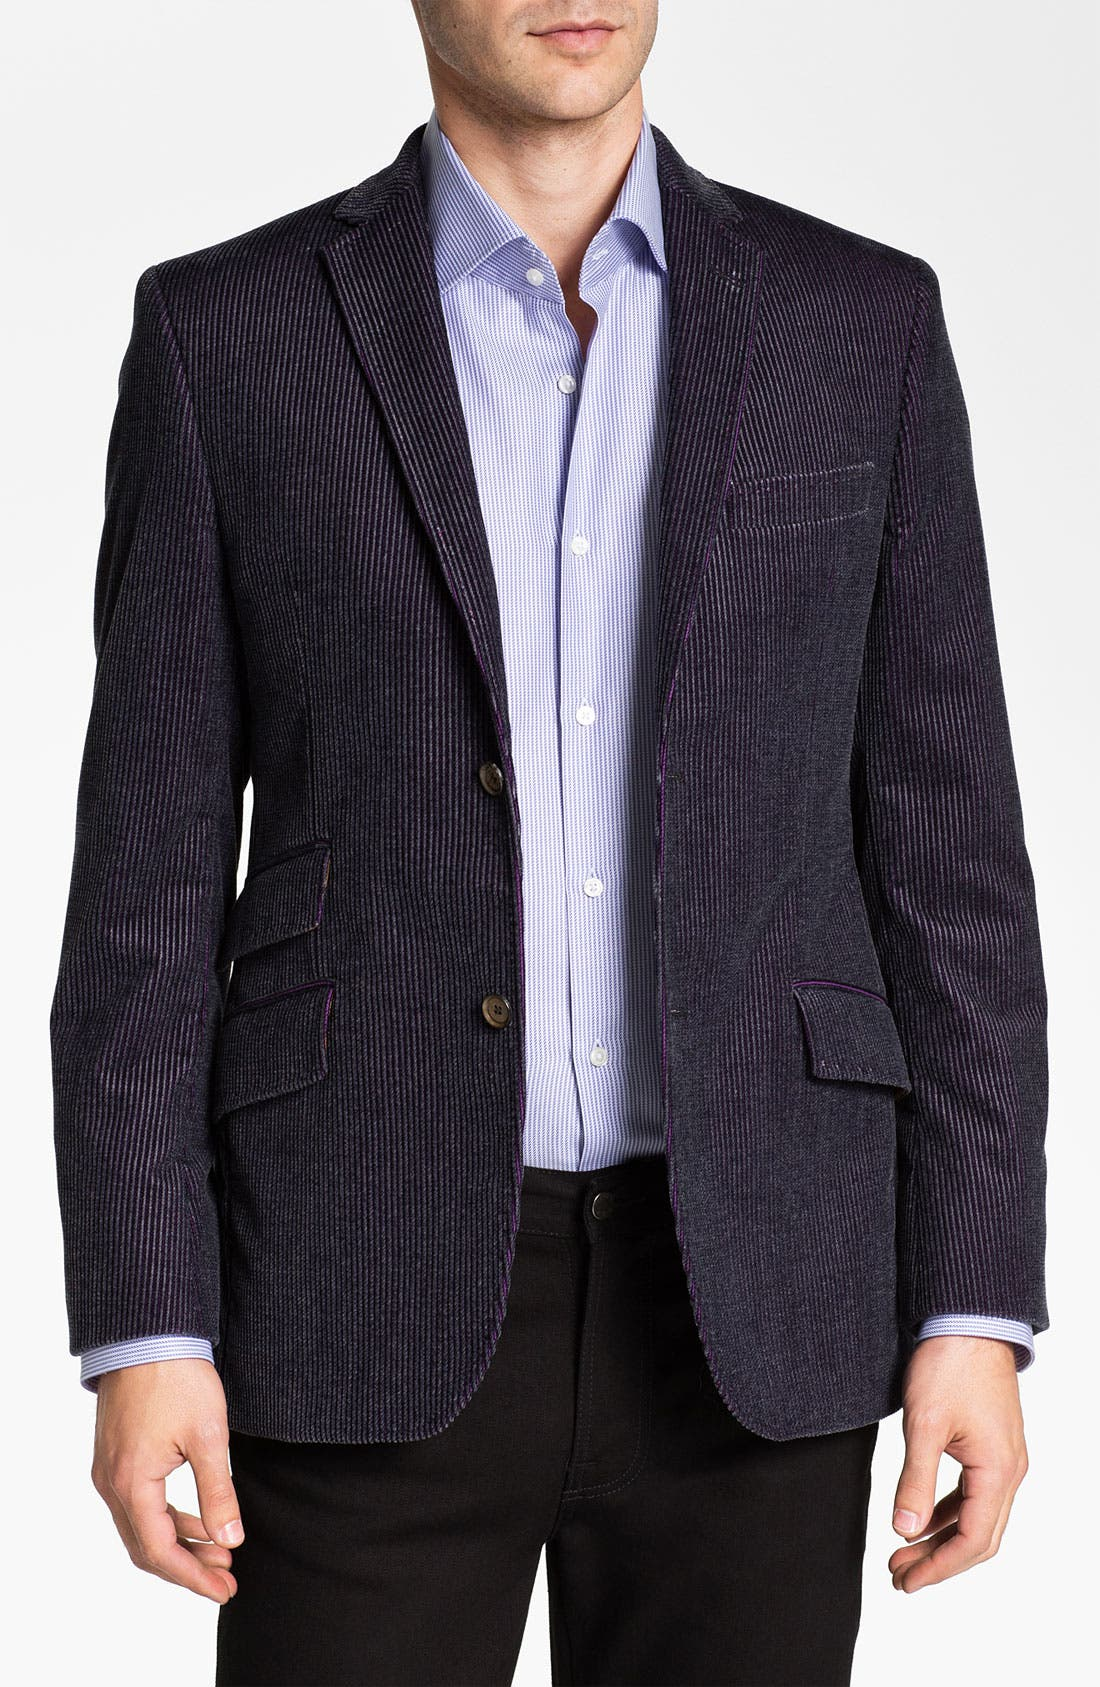 Main Image - Ted Baker London 'Global' Trim Fit Corduroy Sportcoat